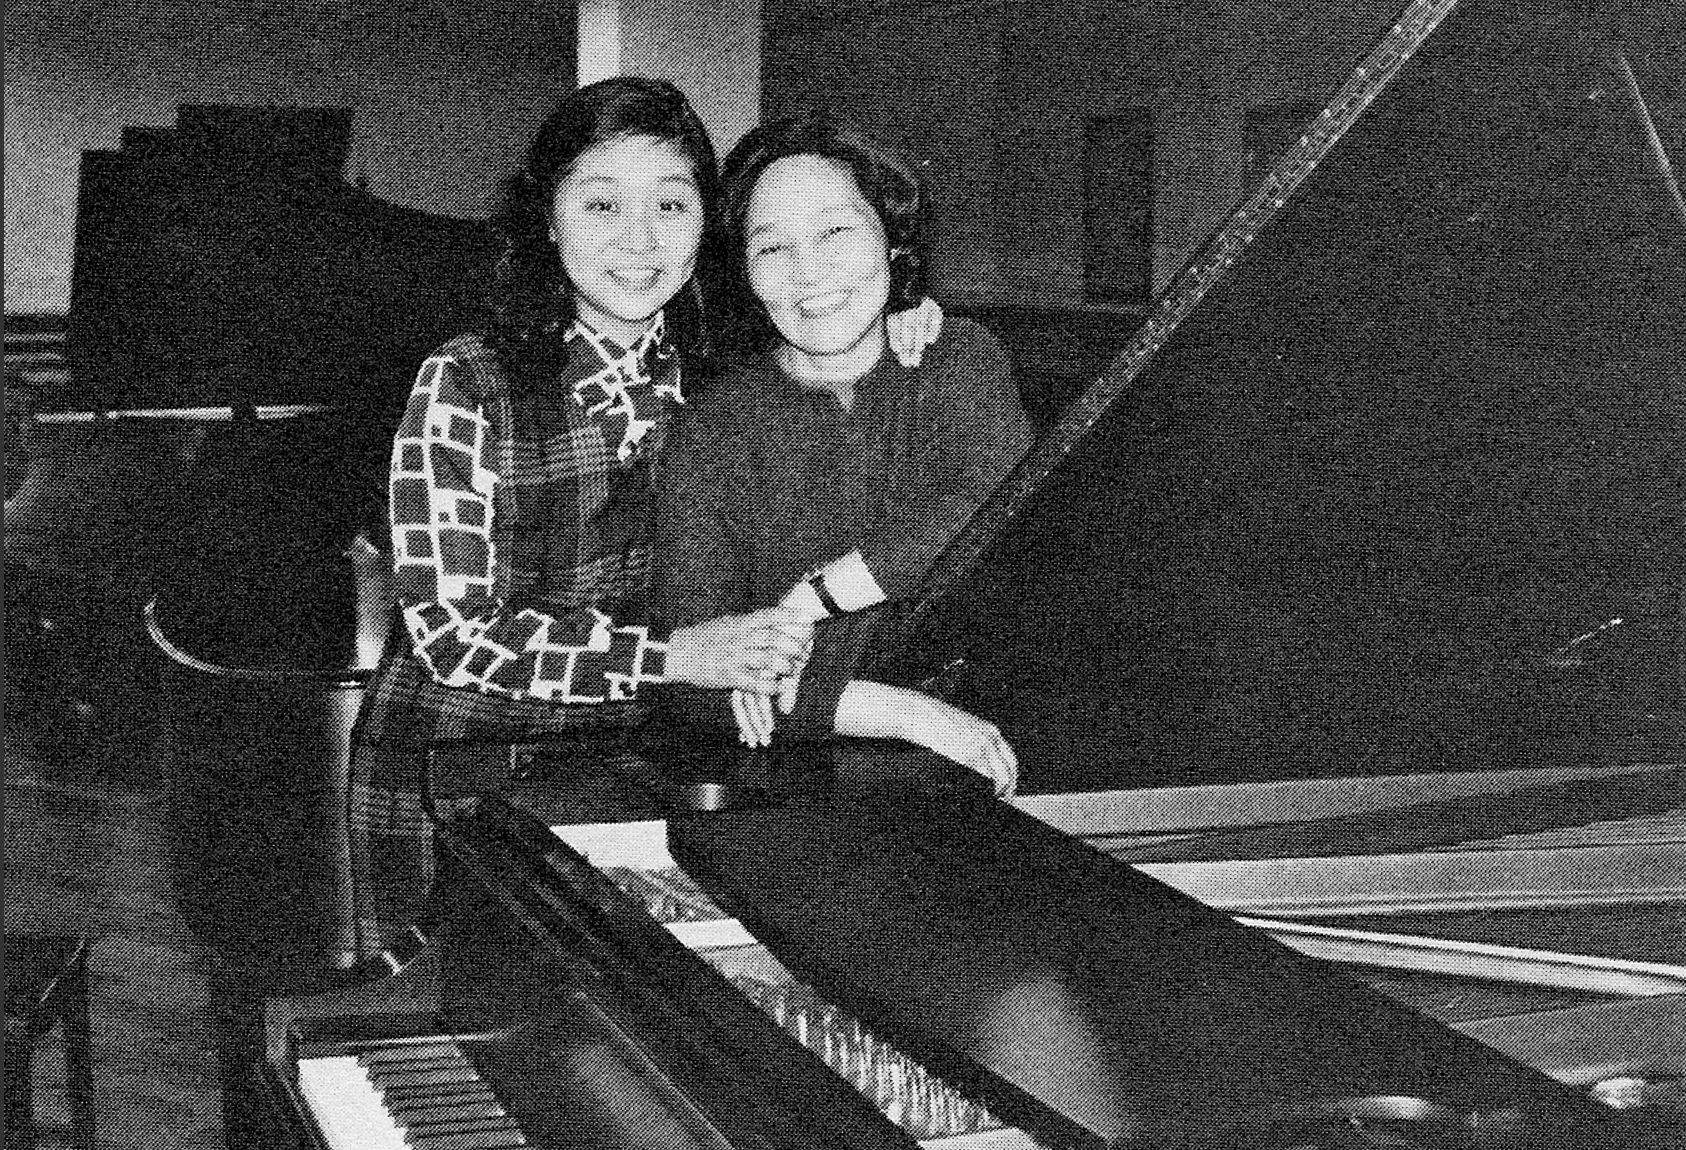 In January of this year, the Center invited Madame Zhou Guangren, pianist and teacher at Beijing's Central Institute of Music, to New York for a week of musical activities. She visited the city's music institutions and attended opera and concert performances. Here she is shown with her daughter at Steinway Hall after trying out concert grands. Madame Zhou's visit to the U.S. was sponsored by the University of Missouri, Kansas City.